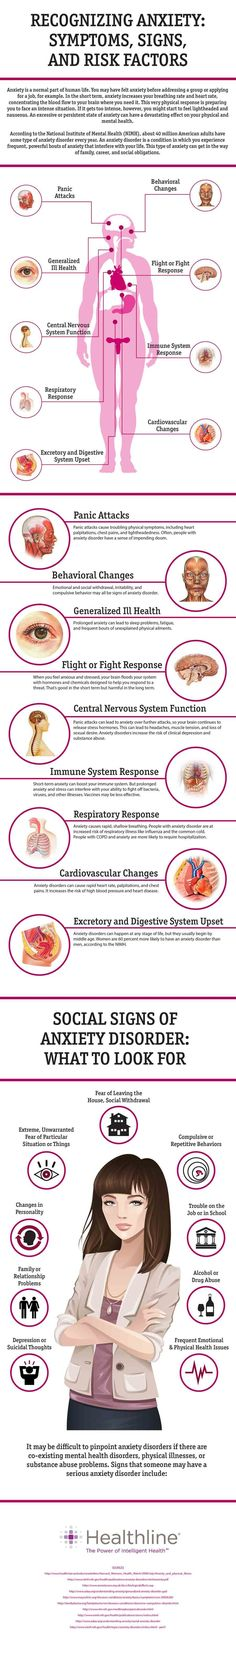 Recognizing Anxiety: Symptoms, Signs, and Risk Factors - Recognizing Anxiety: Symptoms, Signs, and Risk Factors - Anxiety is a normal part of human life. You may have felt anxiety before addressing a group or applying for a job, for example. In the short term, anxiety increases your breathing rate and heart rate, concentrating the blood flow to your brain, where you need it.